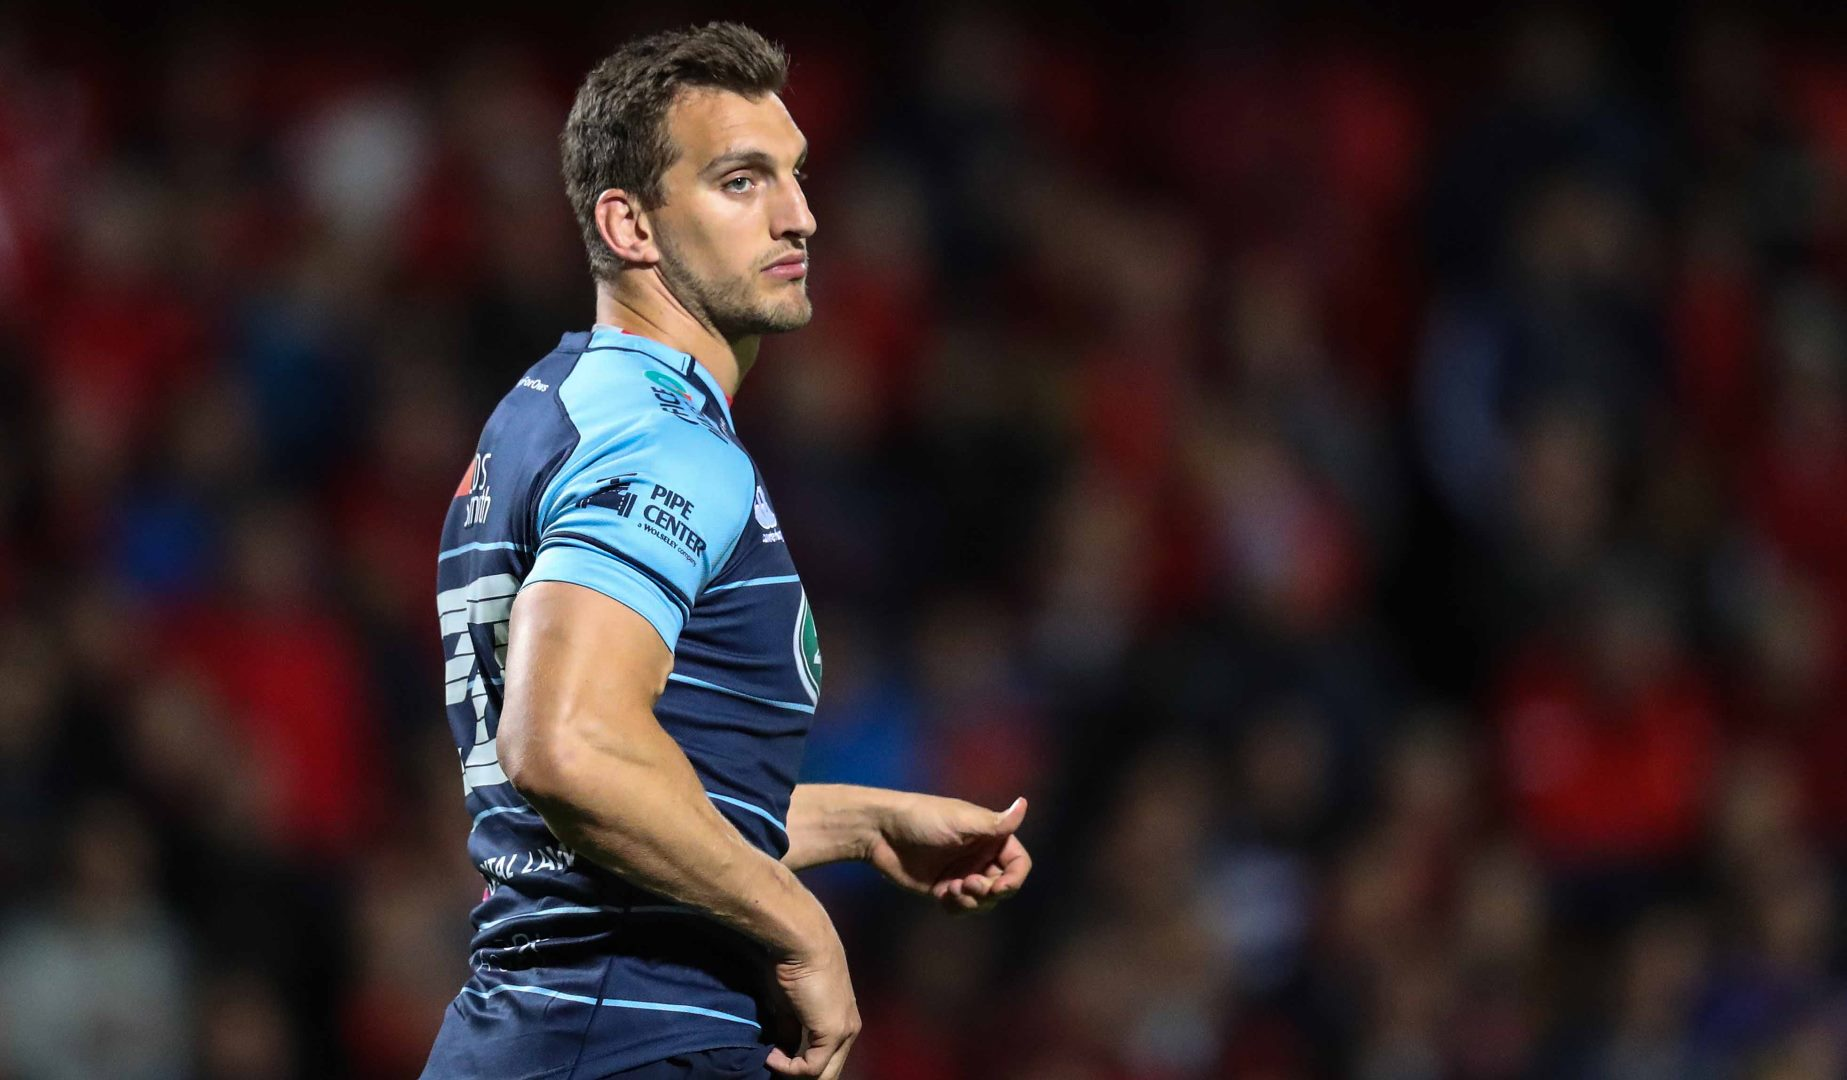 LionsWatch: Warburton makes Blues PRO12 return as Anglo-Welsh Cup begins